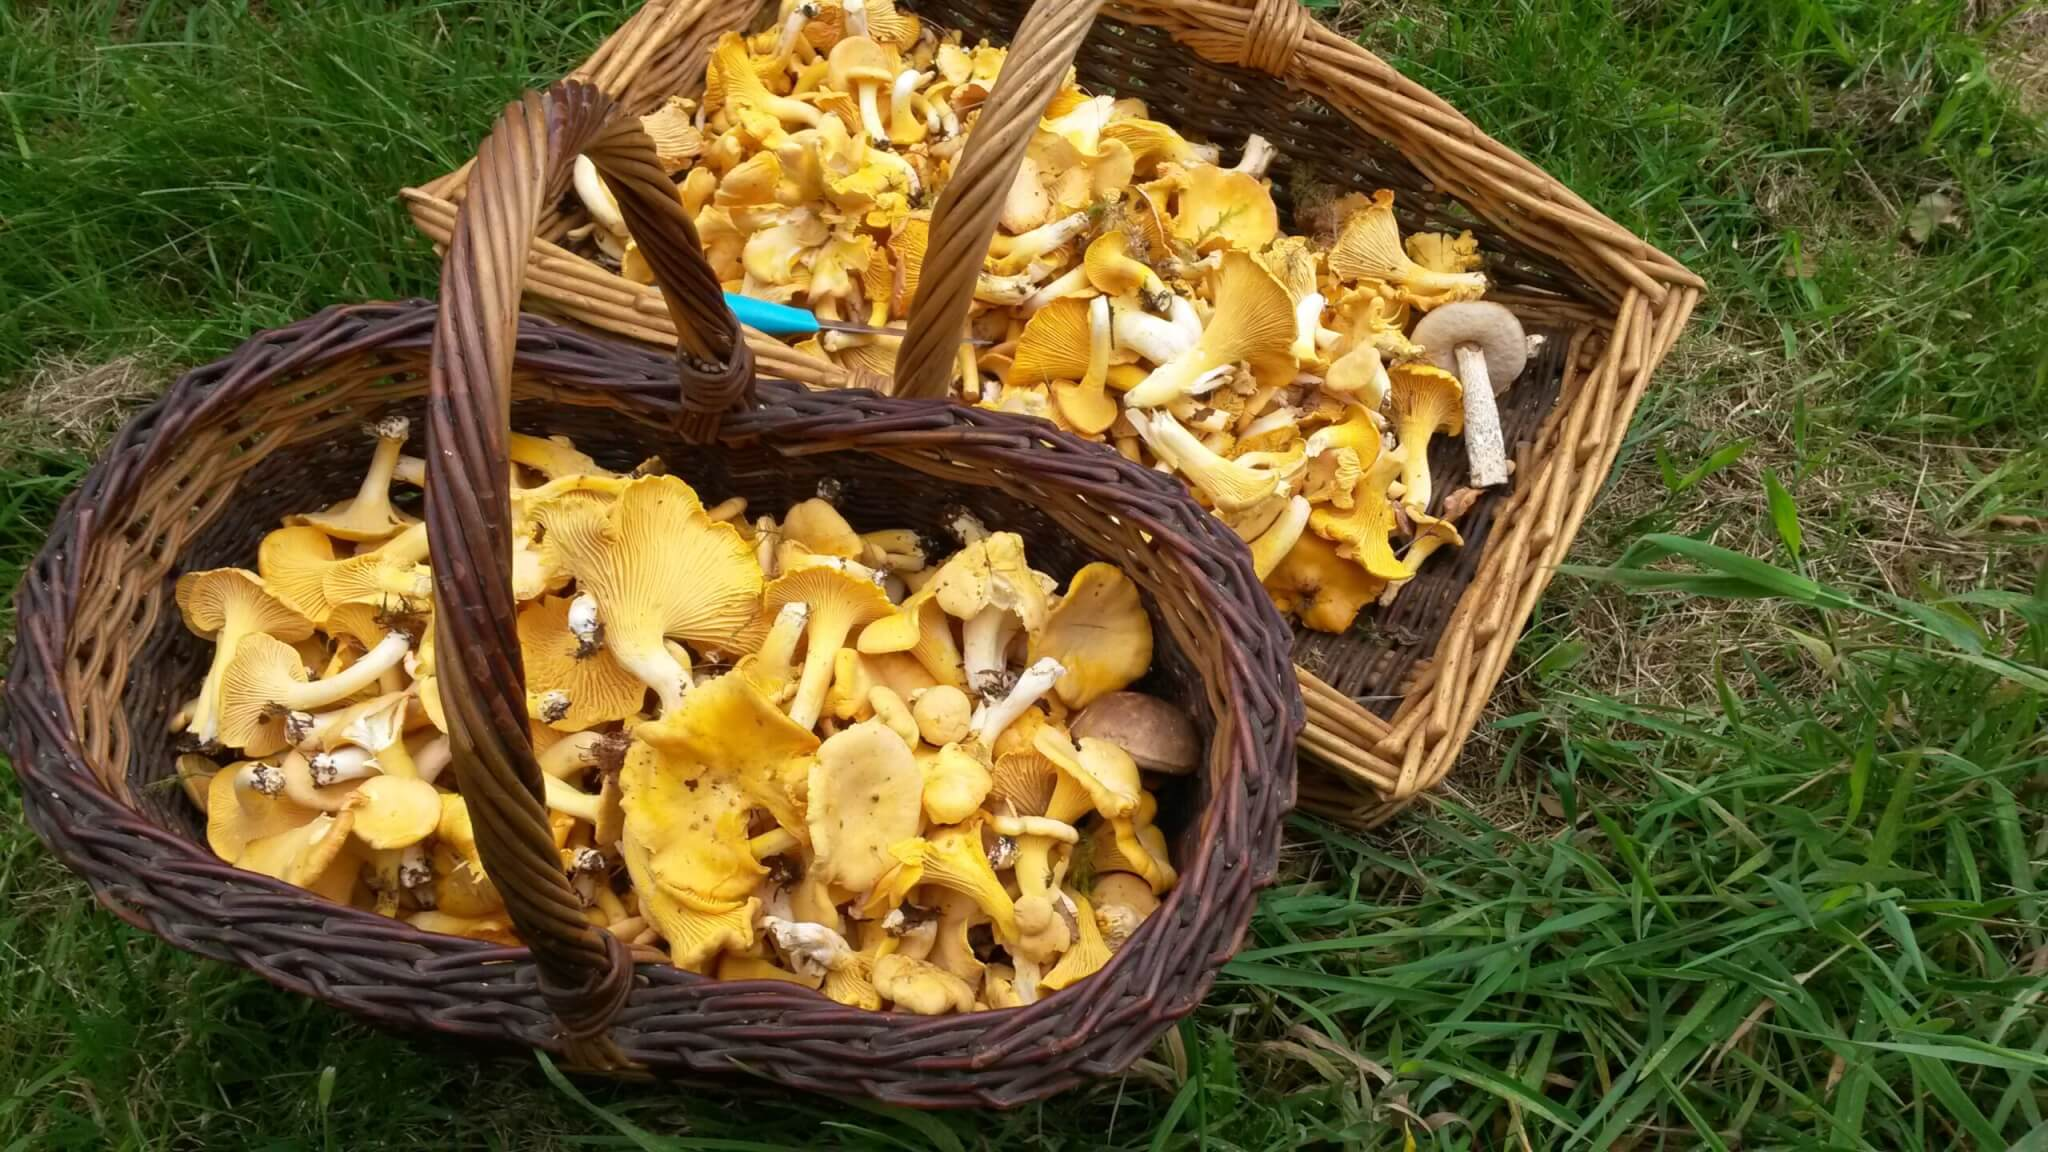 chanterelle mushrooms foraged in the woods